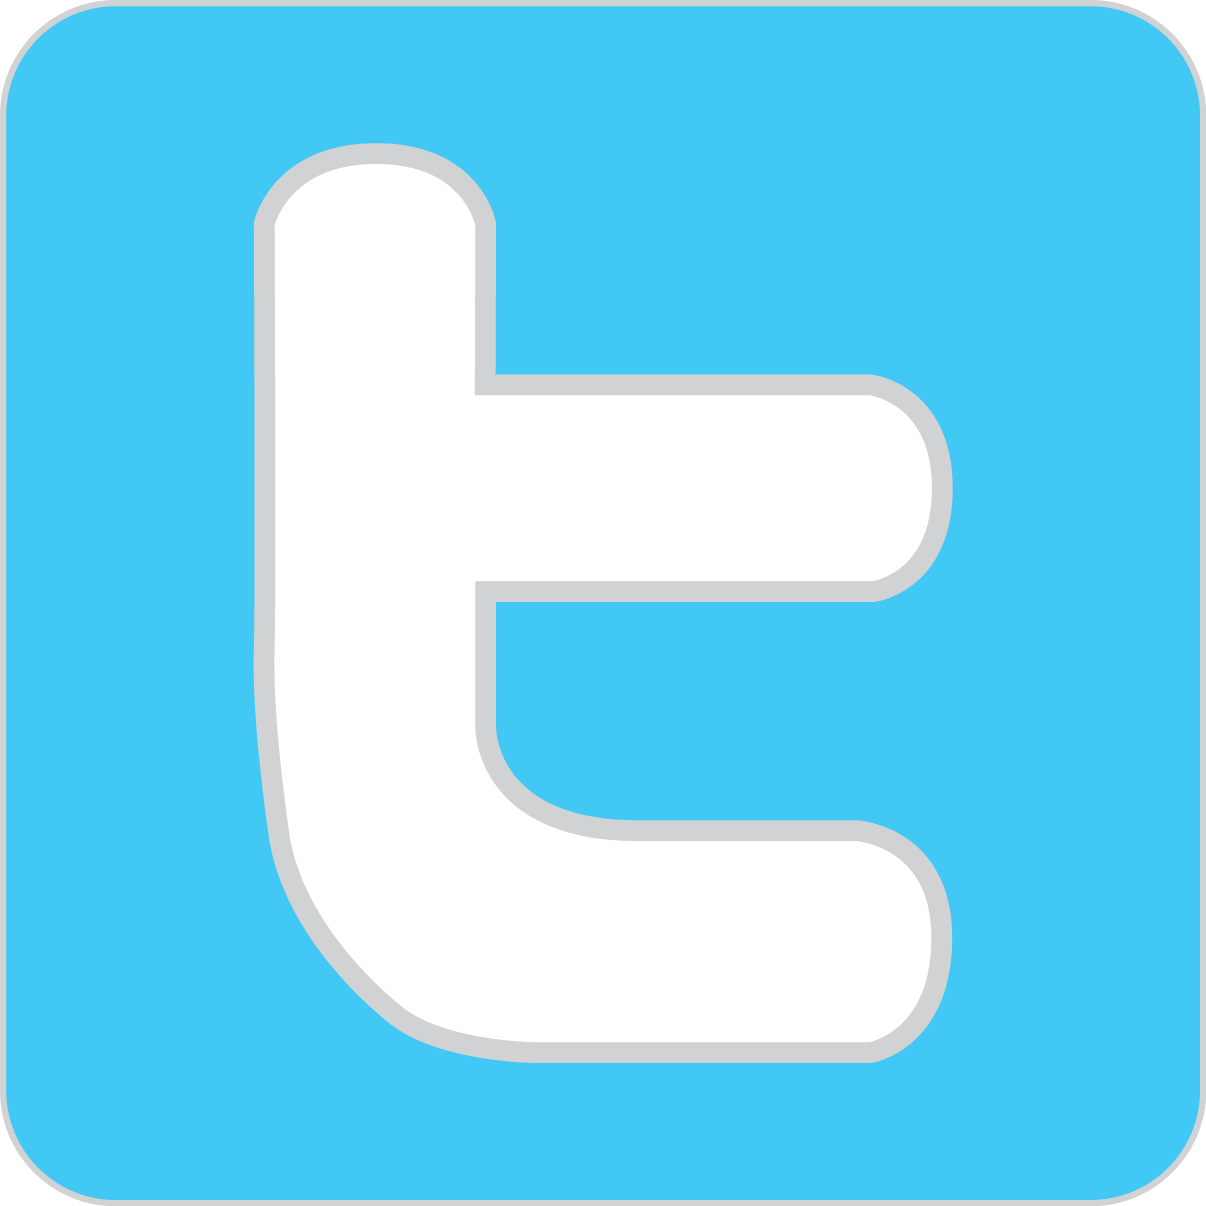 twitter-icon-png-13